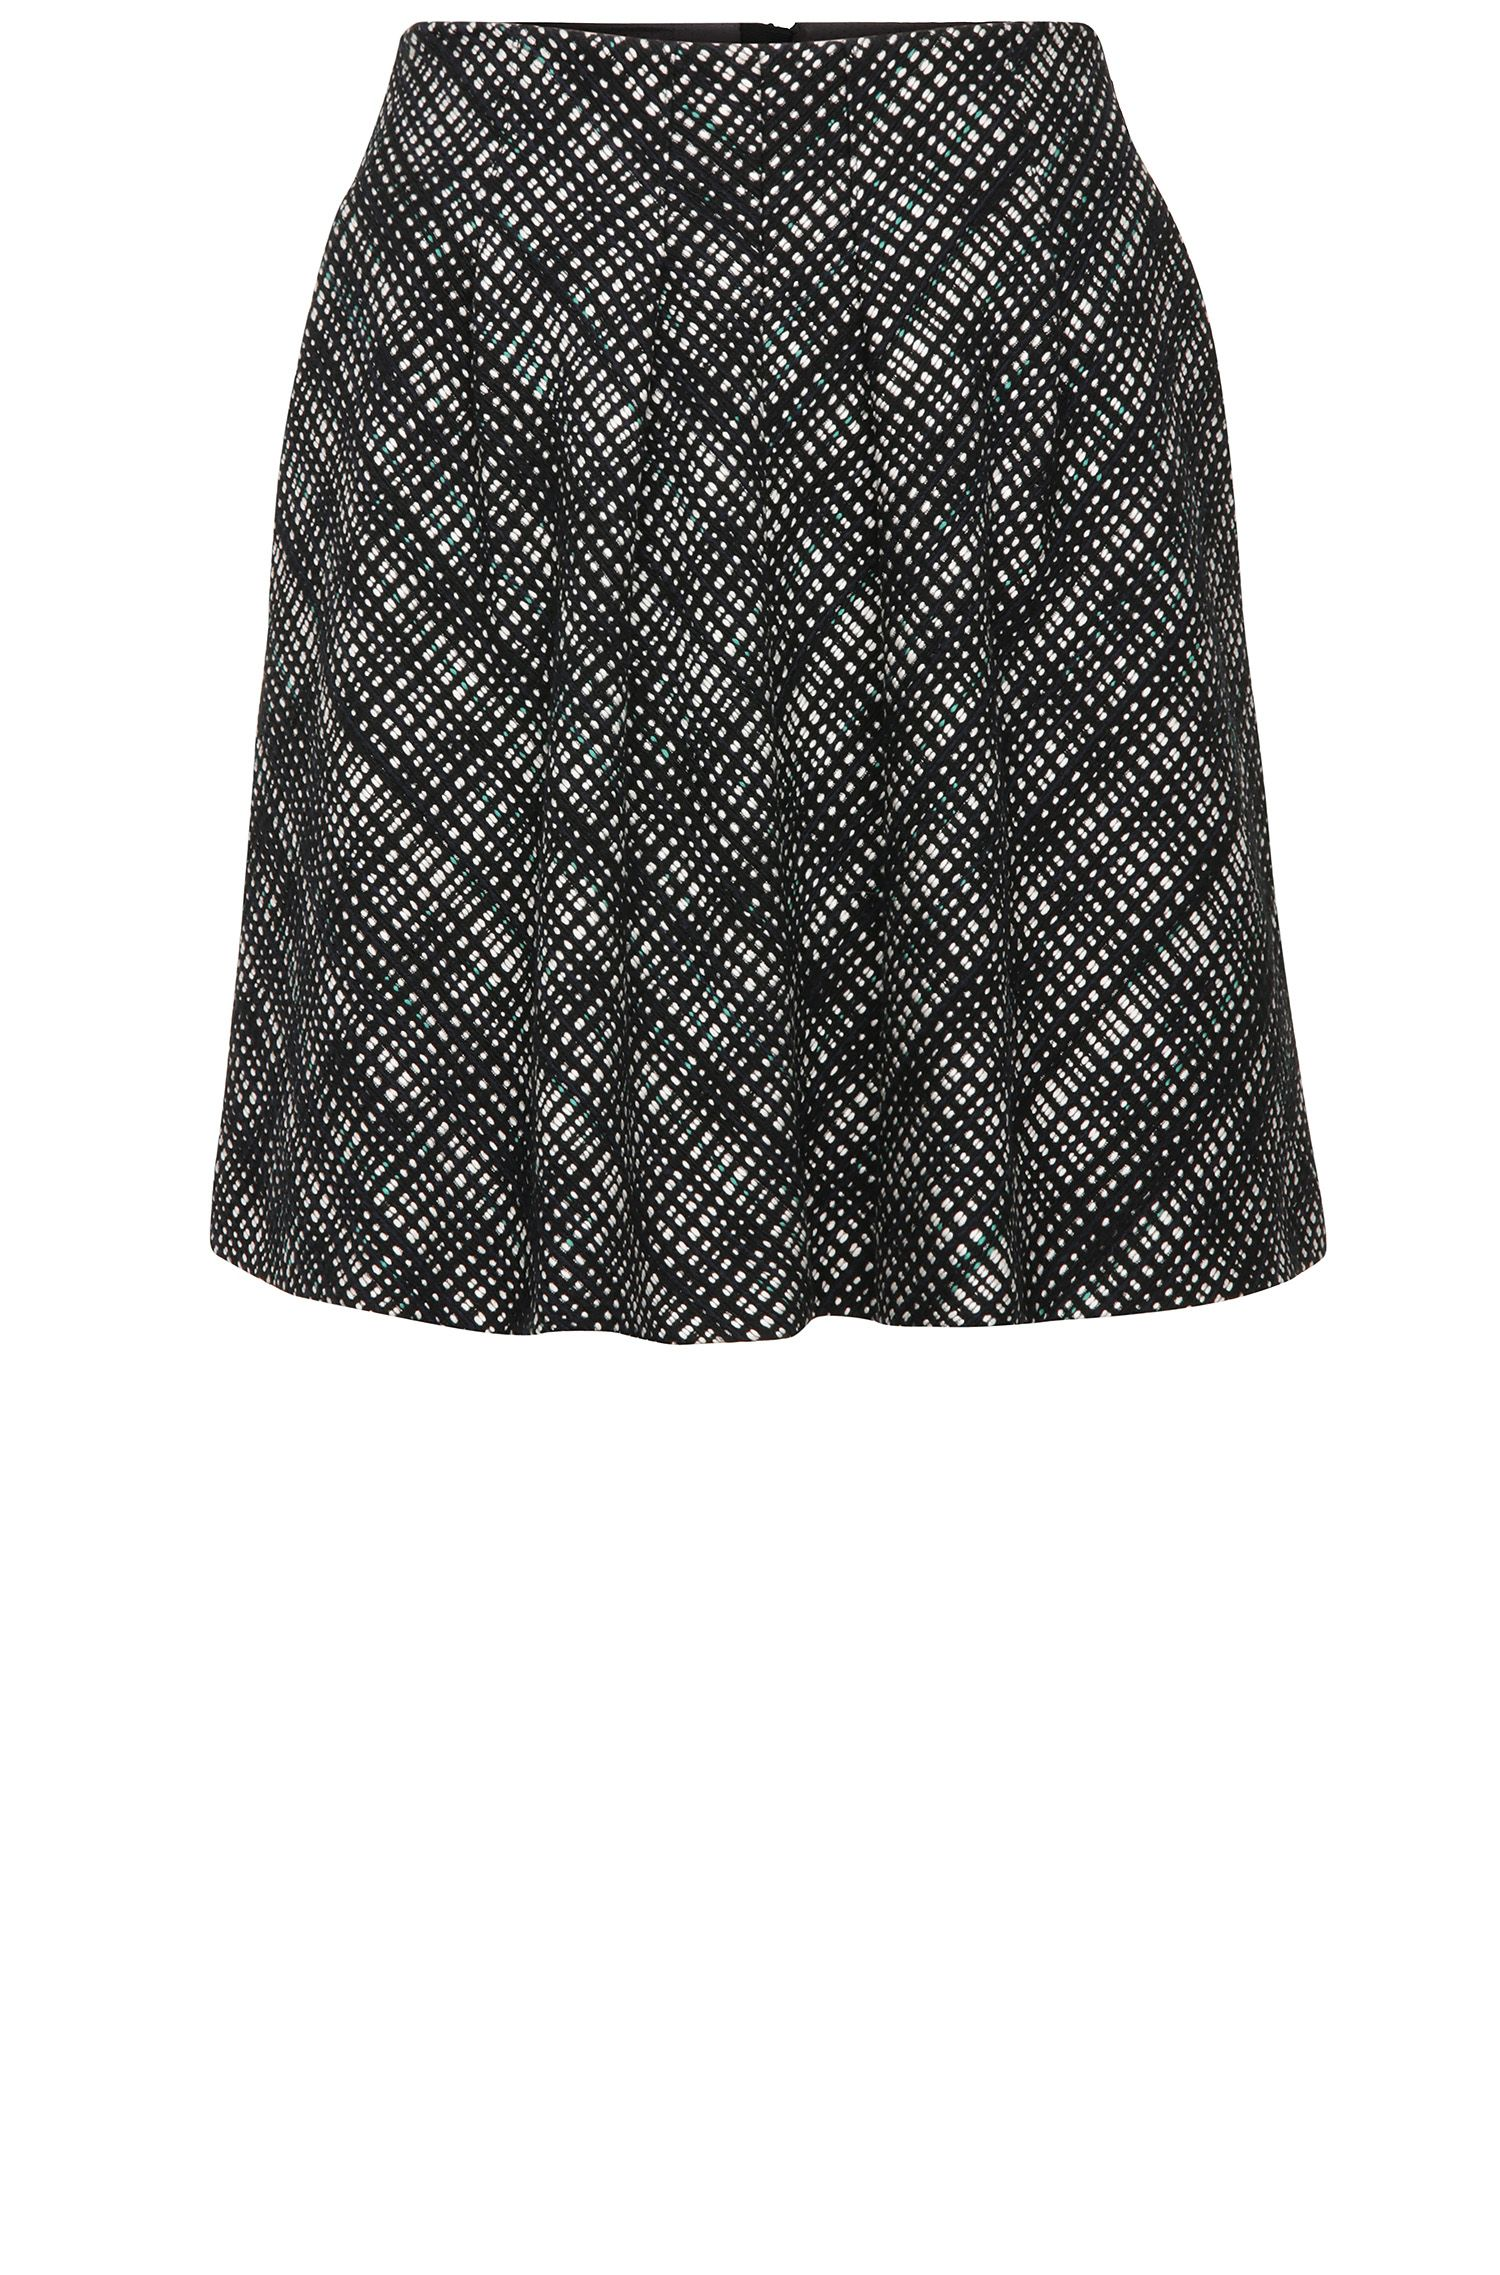 Tweed-look short skirt in a cotton blend: 'Bablocky1'